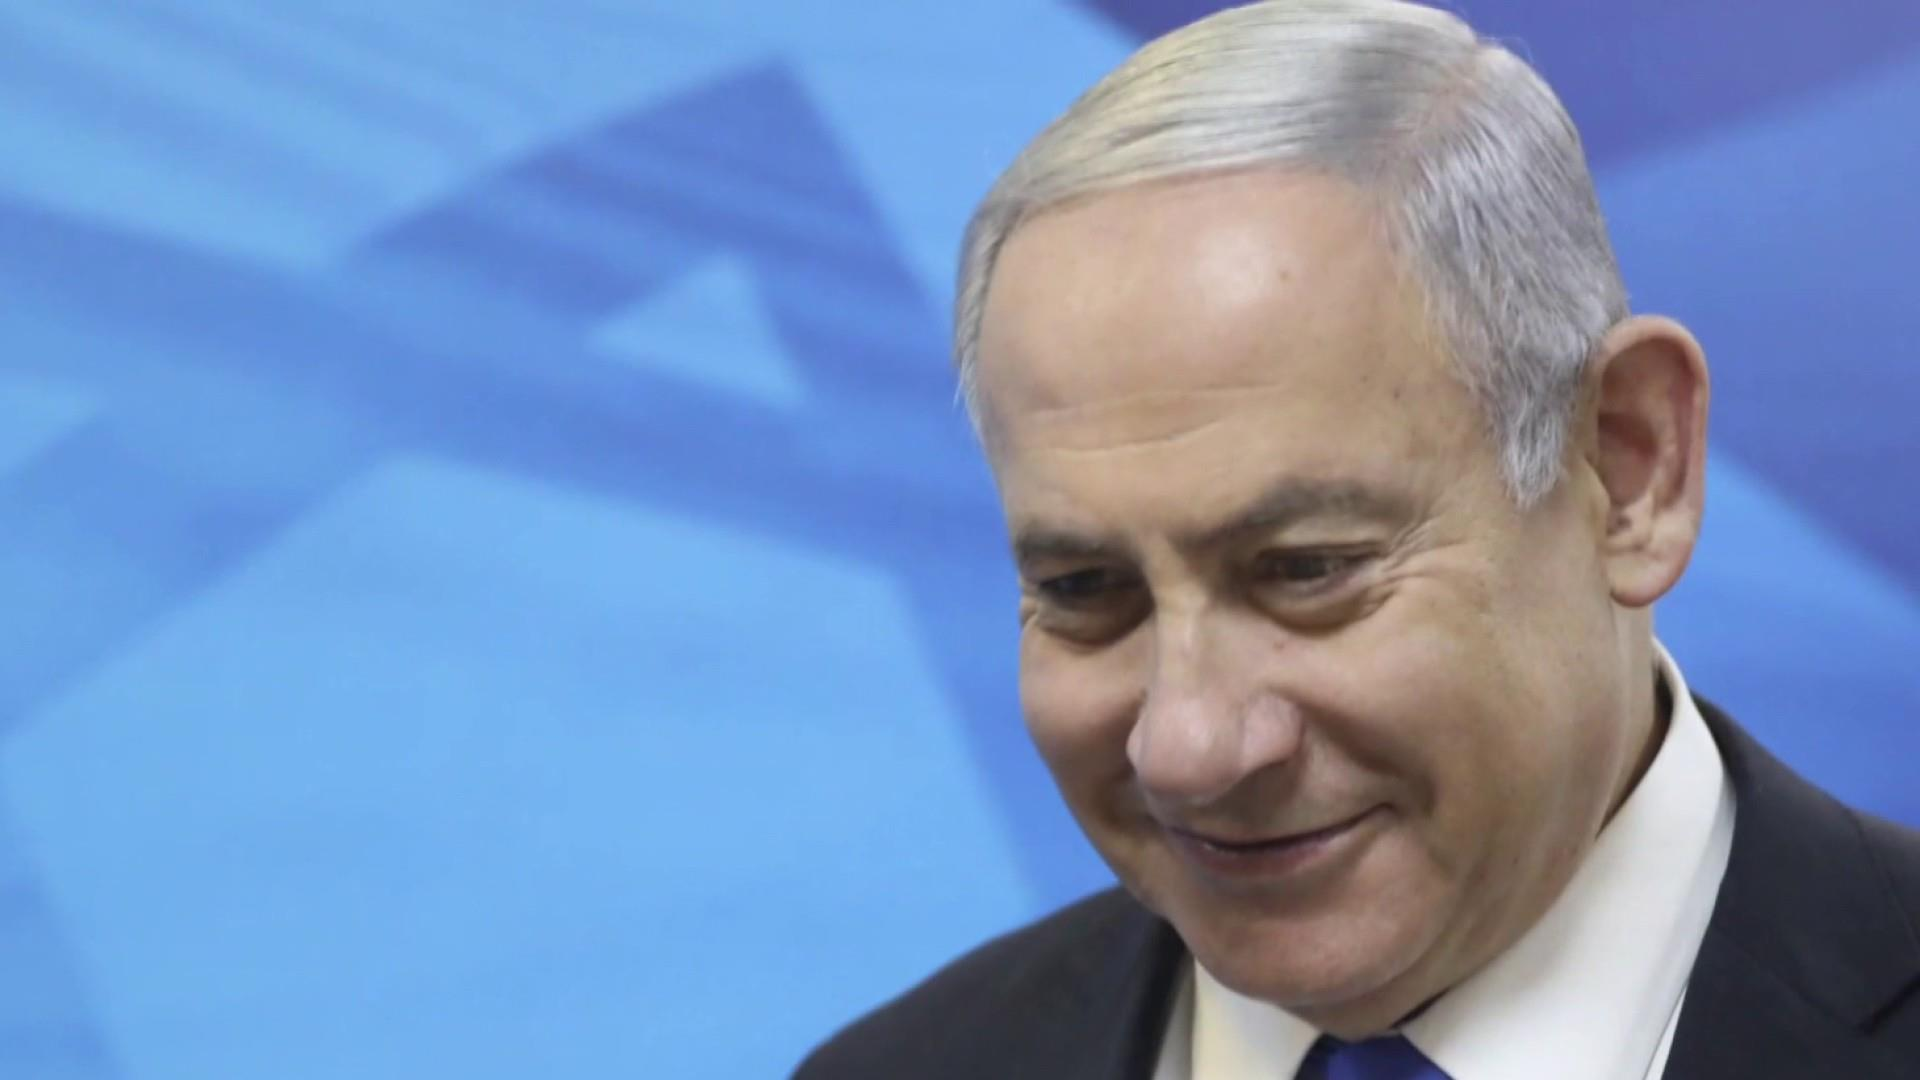 Netanyahu fights for another term amid corruption charges